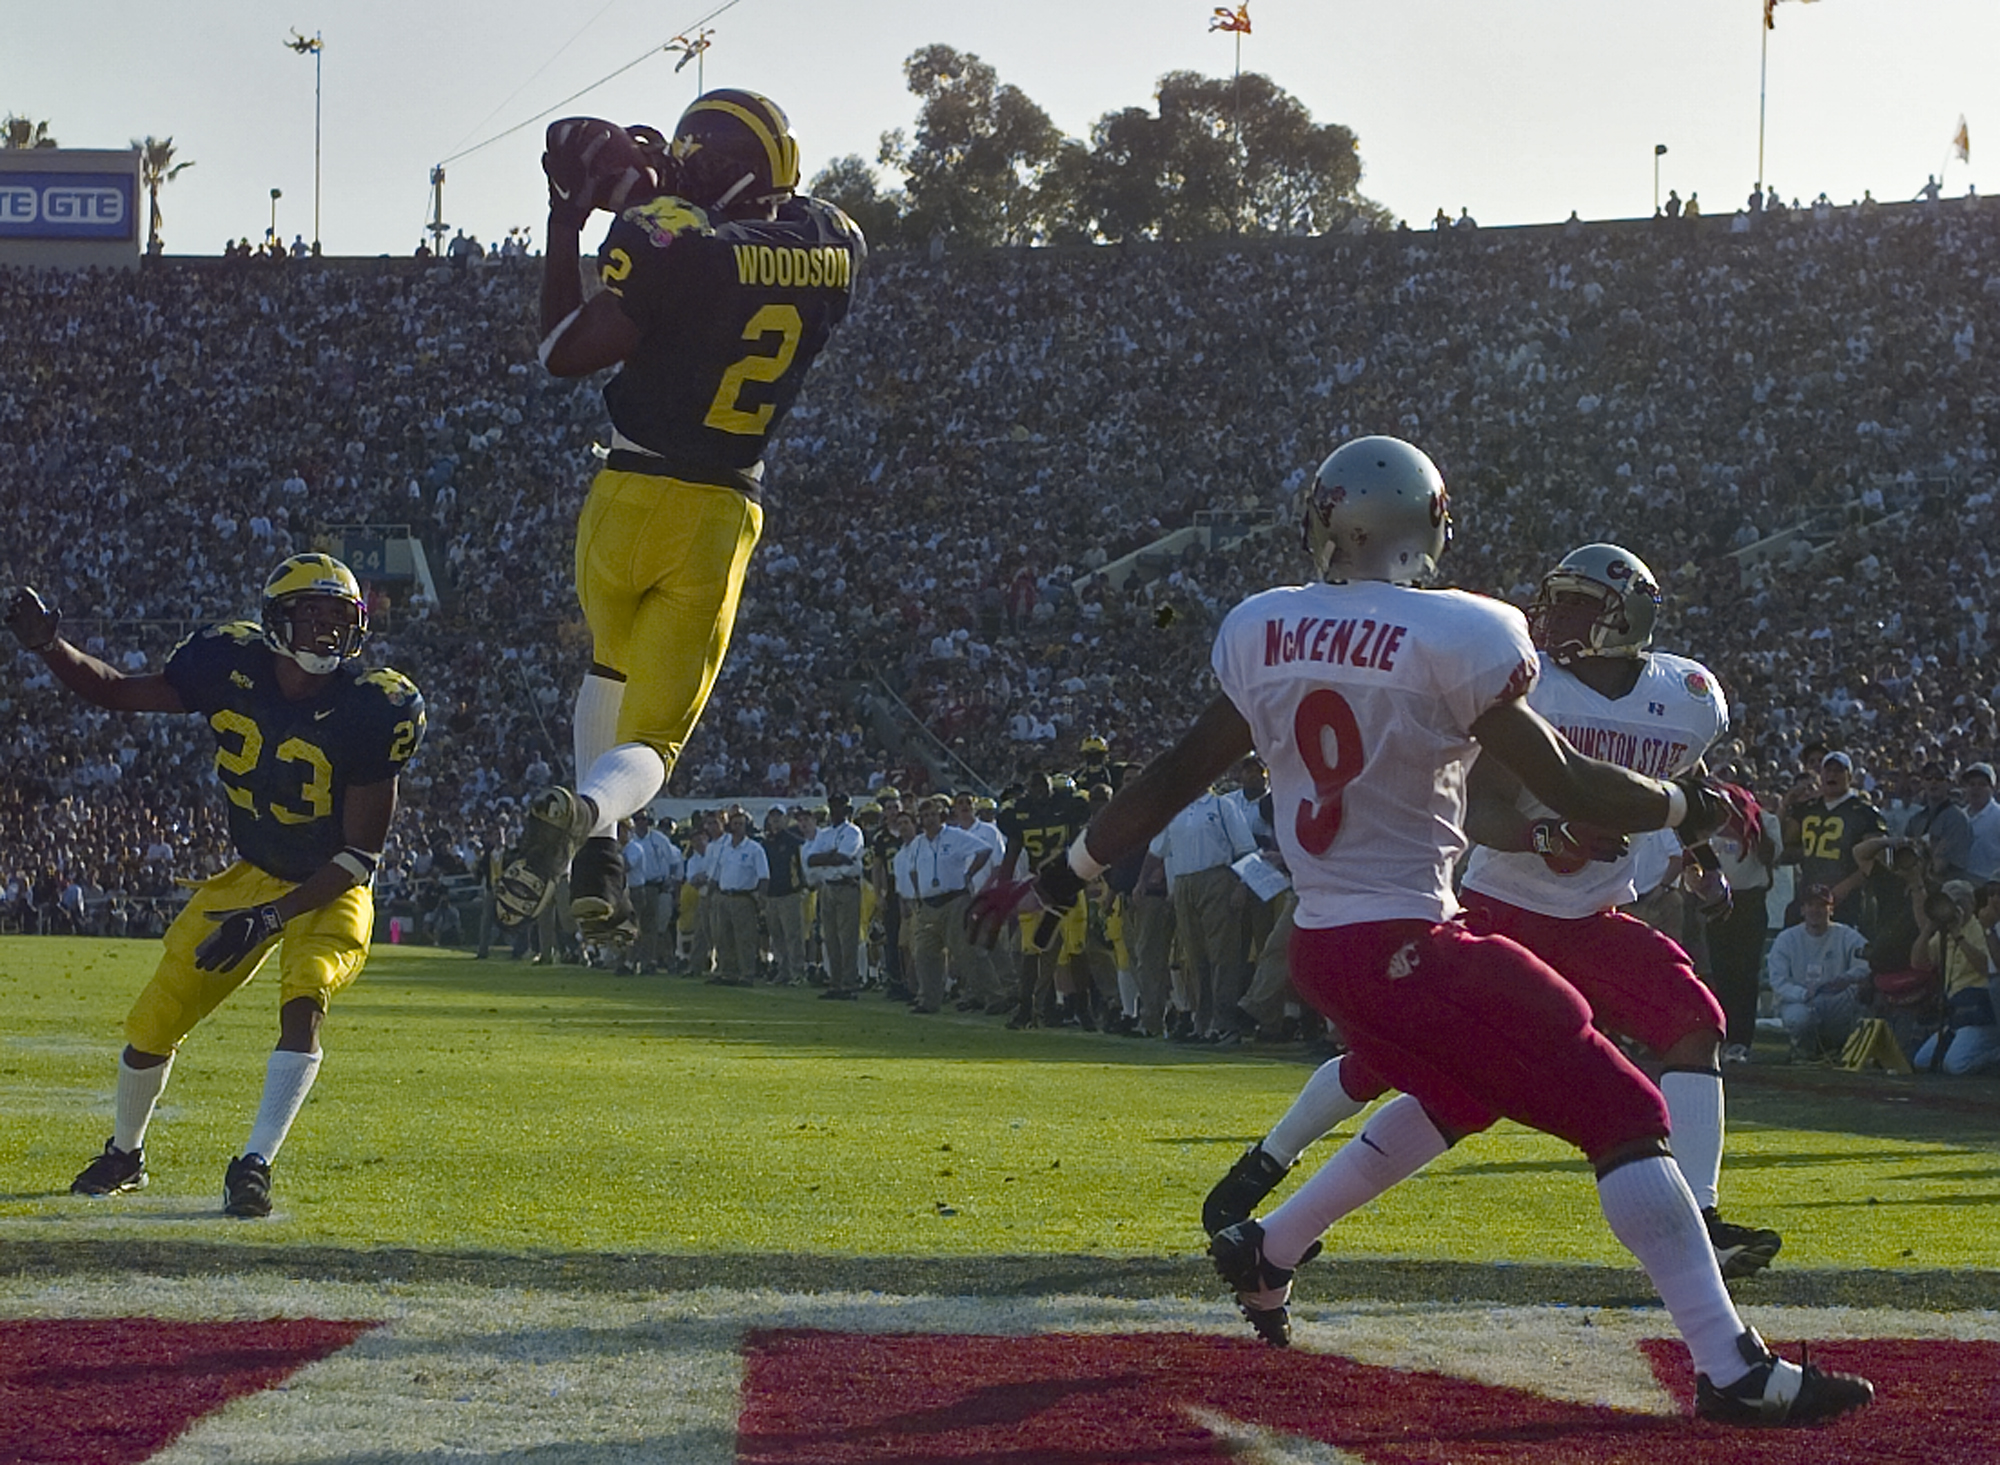 Michigan's cornerback Charles Woodson (2) leaps to make an interception in the end zone in the first half on a pass from Washington State's Ryan Leaf during the 84th Rose Bowl in Pasadena, Calif., Thursday, Jan. 1, 1998. Watching the play are Michigan's William Peterson (23) and Washington States Kevin McKenzie (9). Player at right unidentified. (AP Photo/Mark J. Terrill)